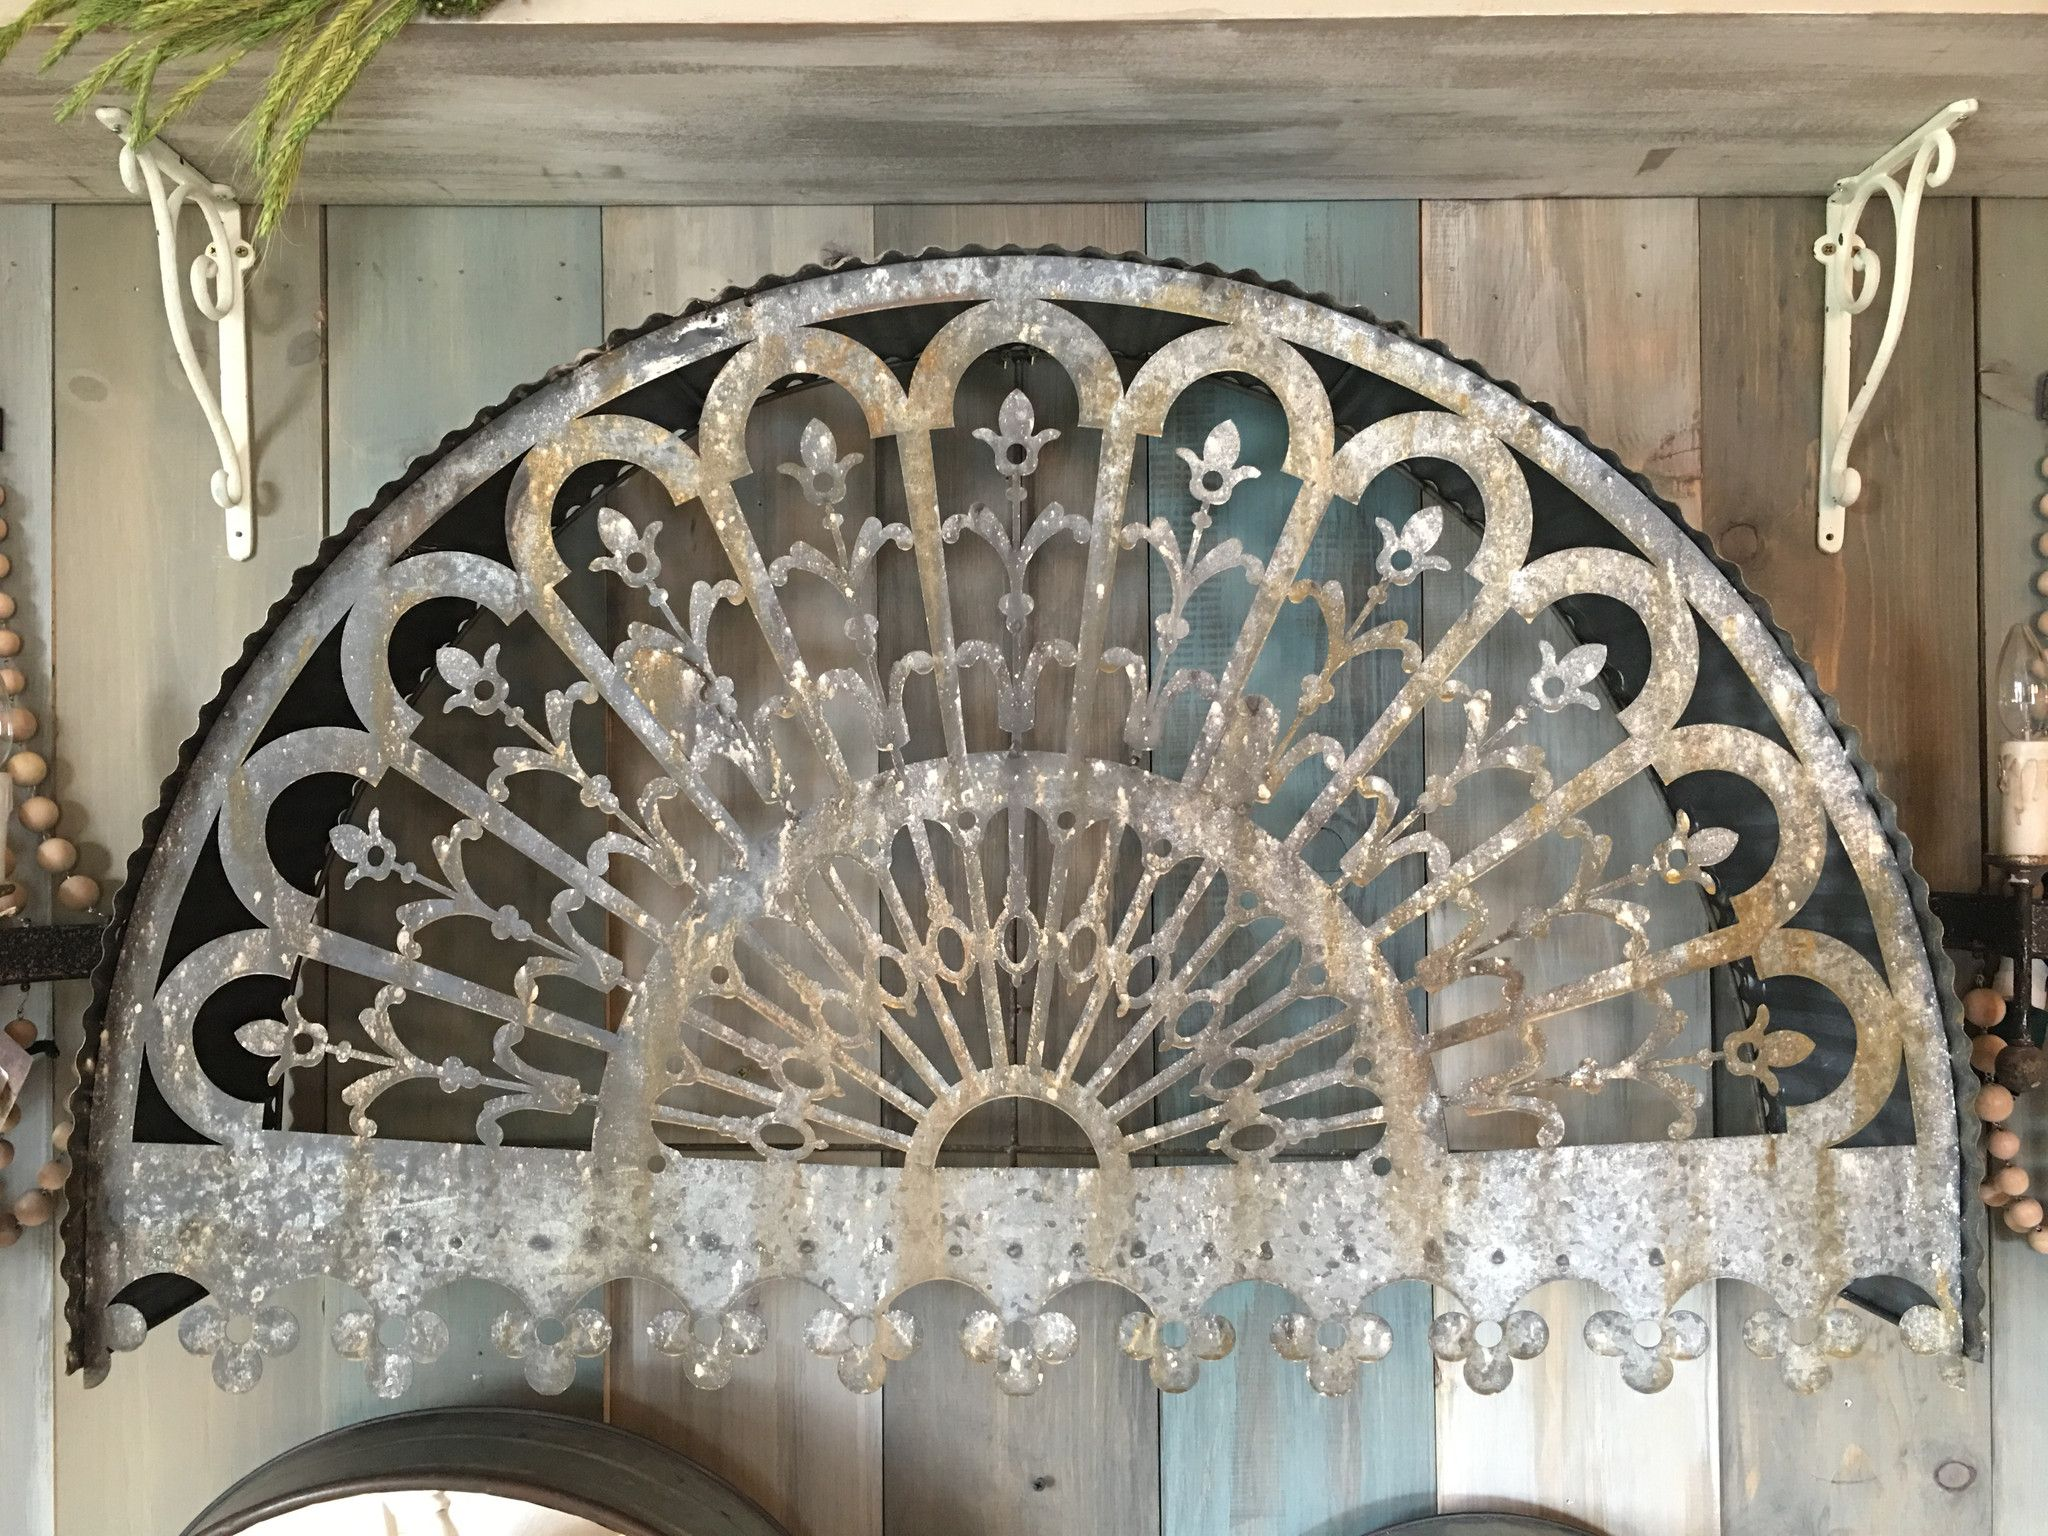 Metal Arch Wall Decor Filigree Arched Relic Is Constructed Of An Aged Galvanized Metal